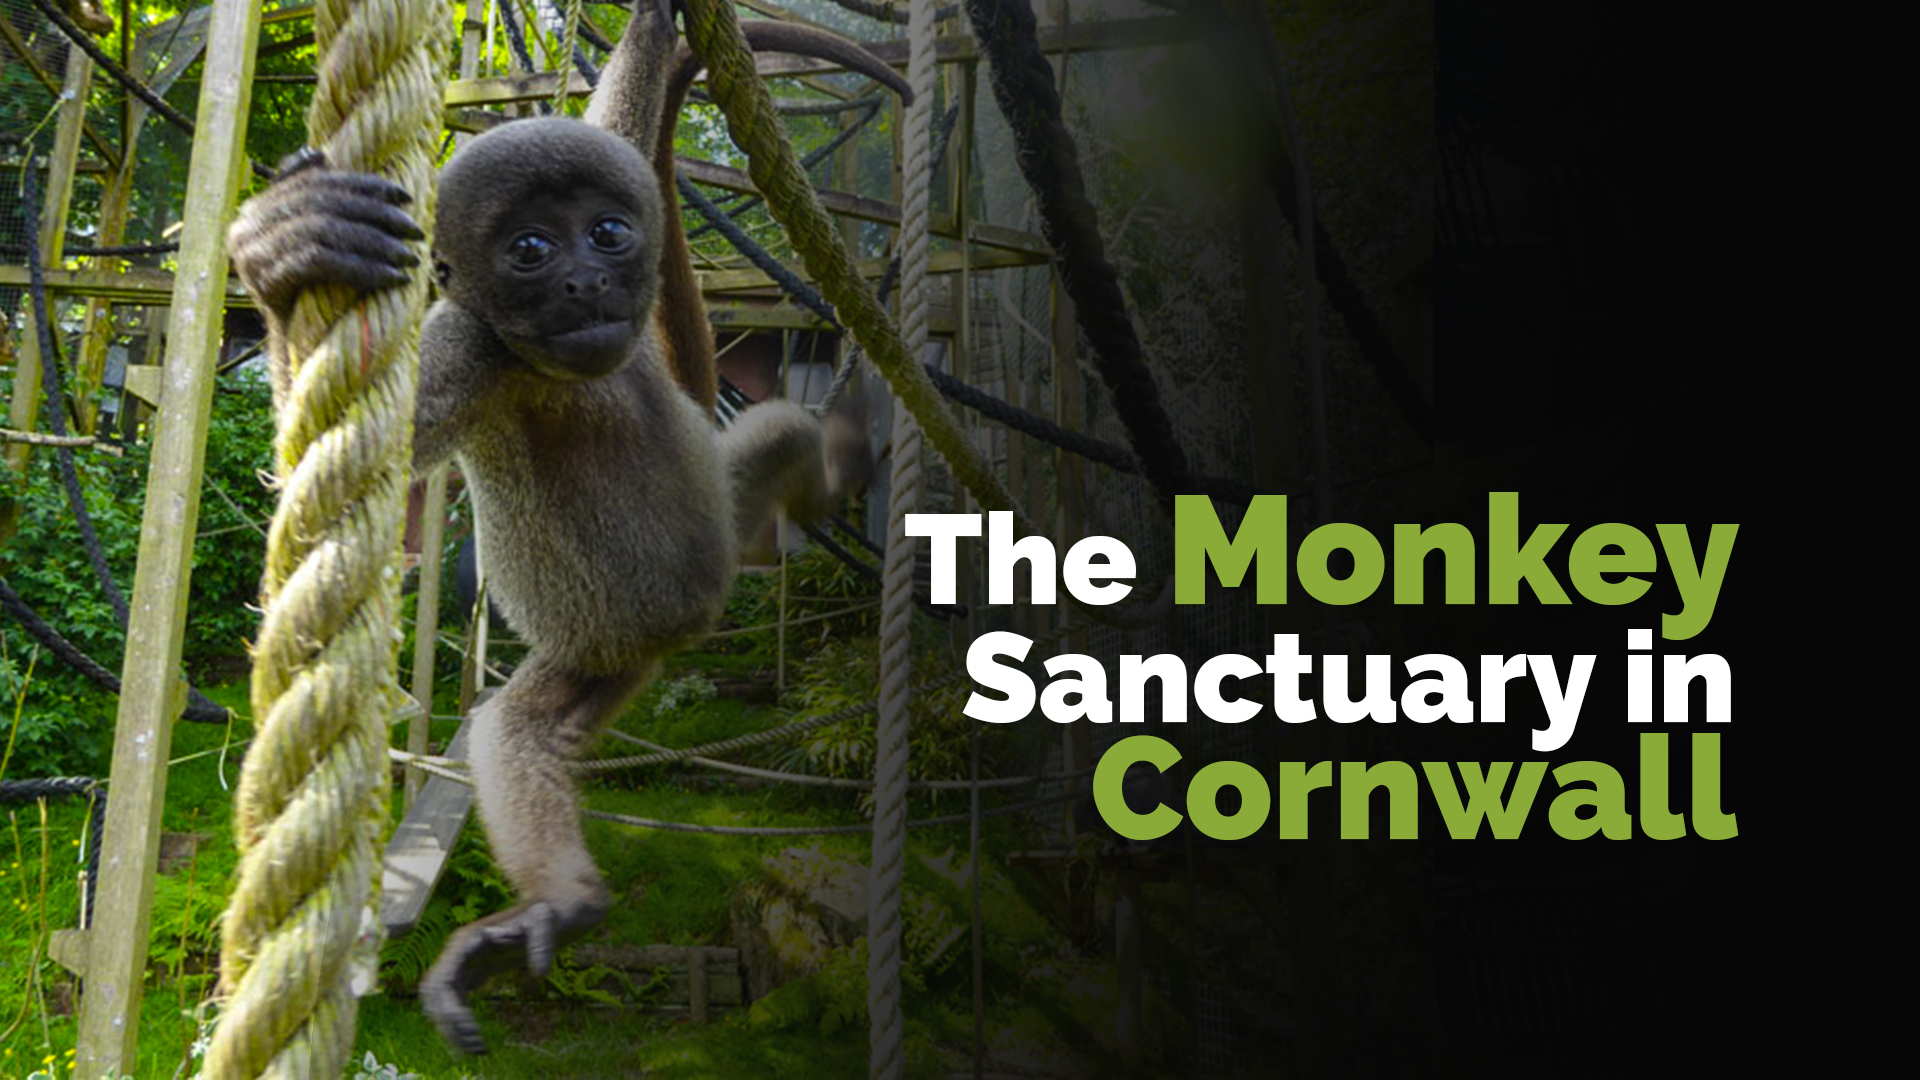 The Monkey Sanctuary in Cornwall